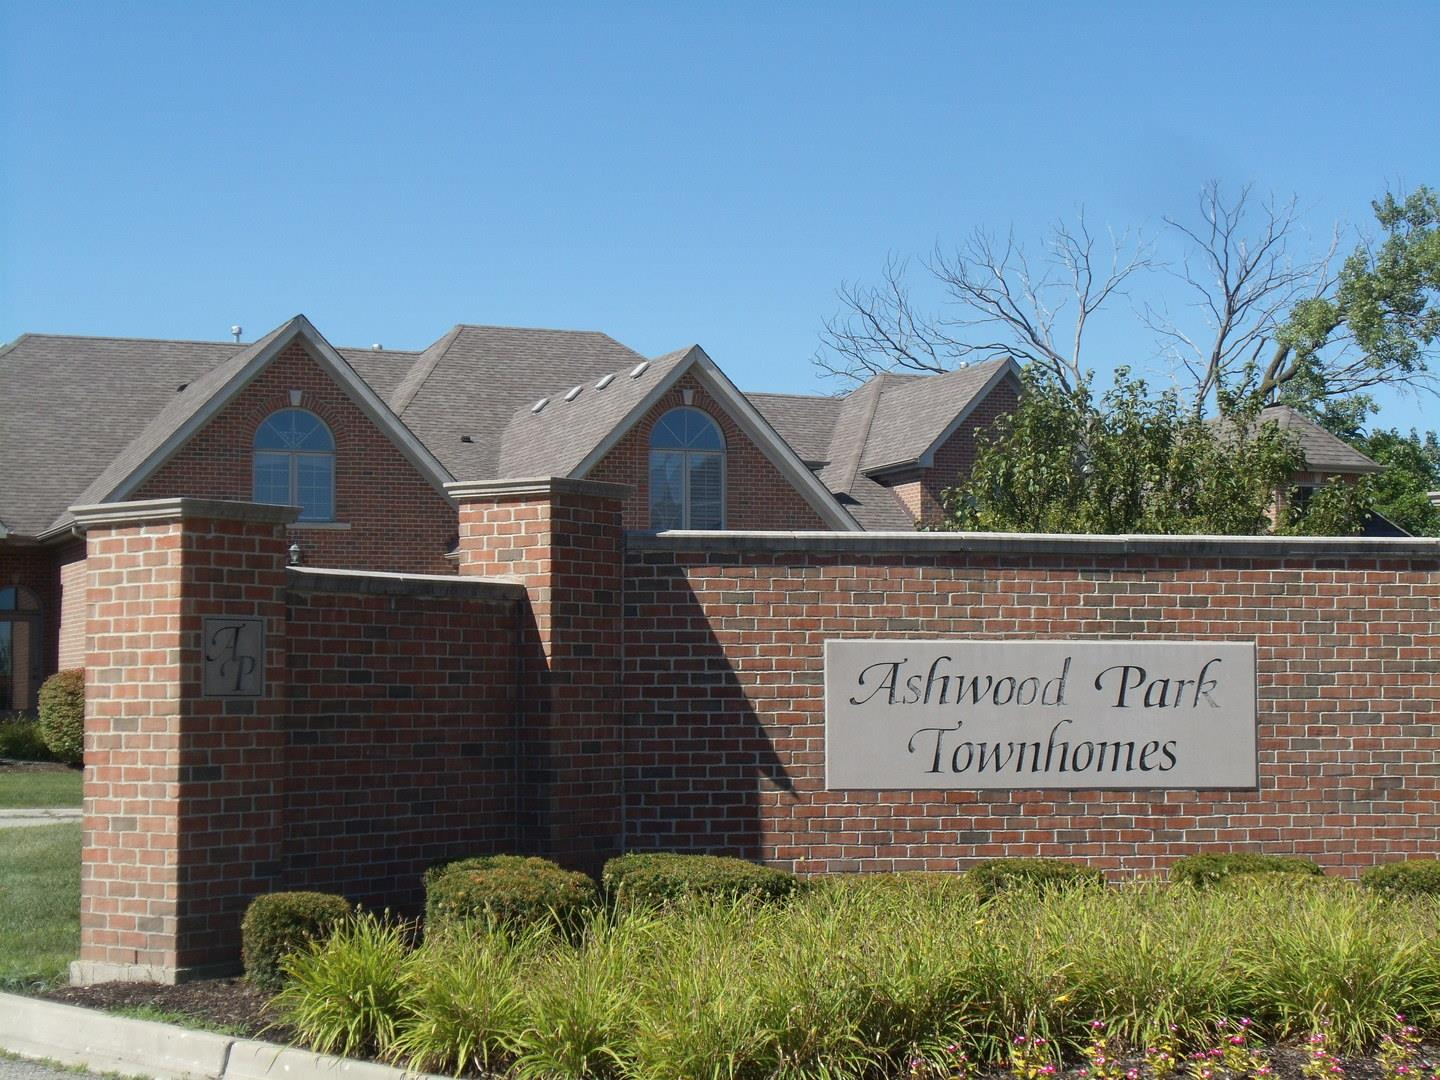 4040 ASHWOOD PARK Court #0, Naperville, IL 60564 - #: 09843422